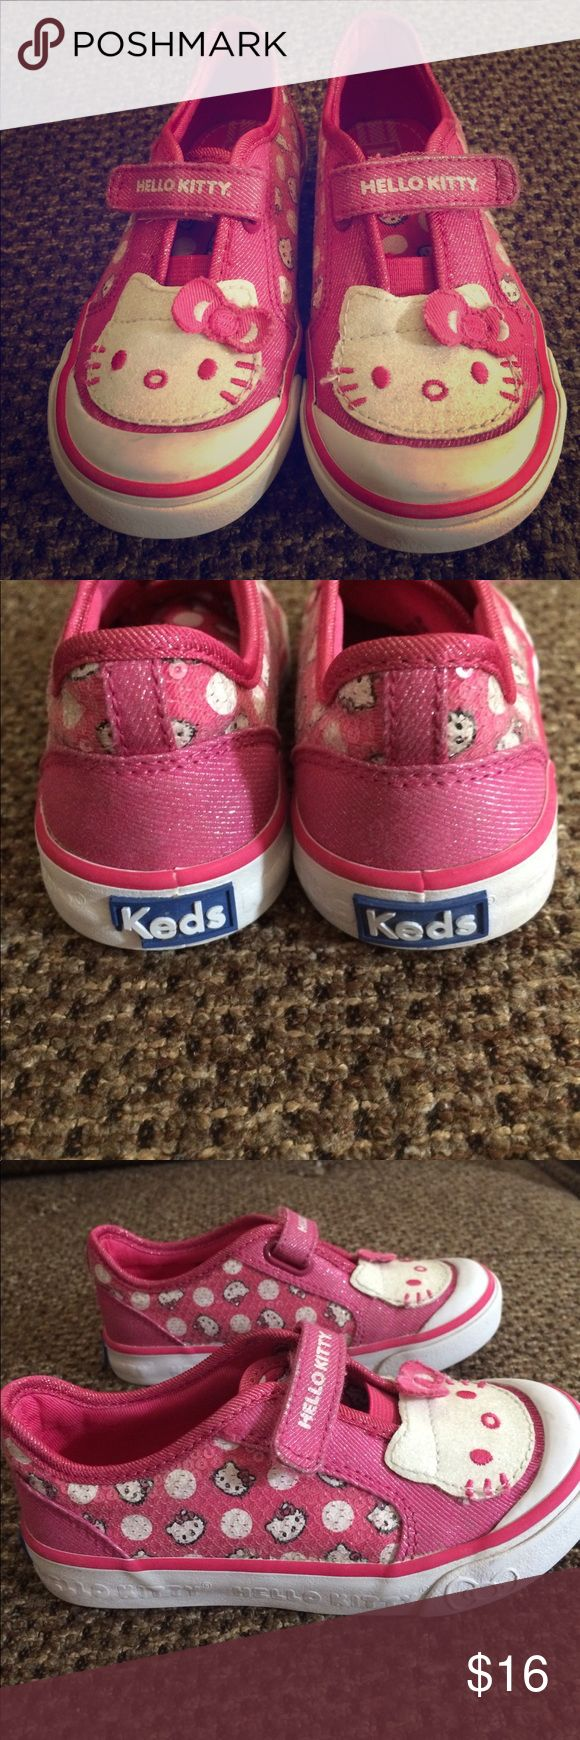 Hello kitty keds tennis shoes size 6 Hello kitty tennis shoes glittery hello kitty and sequins on the side Excellent used condition Keds Shoes Sneakers